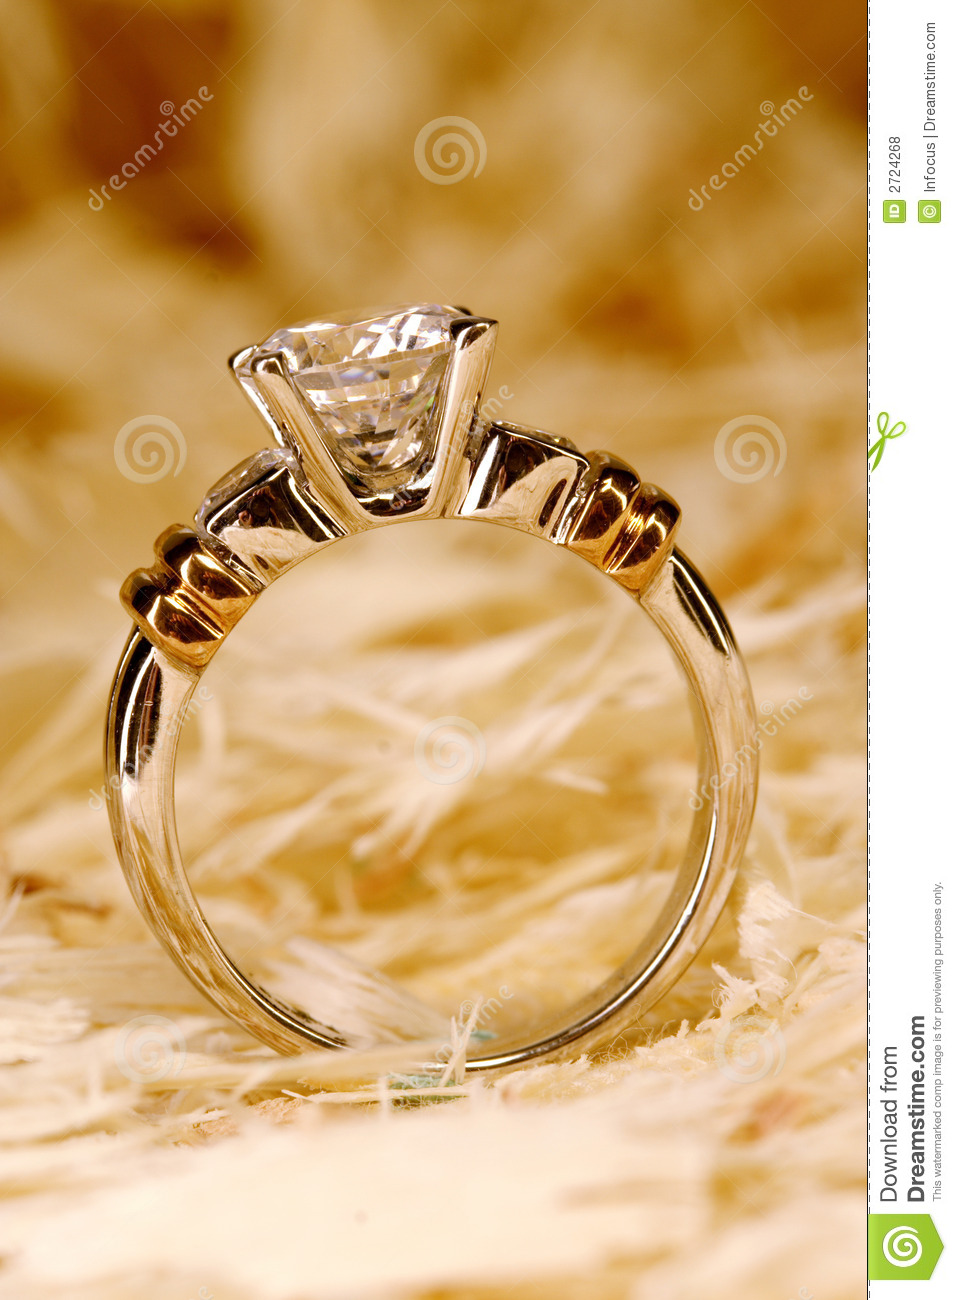 Golden ring stock photo. Image of expensive, precious - 2724268